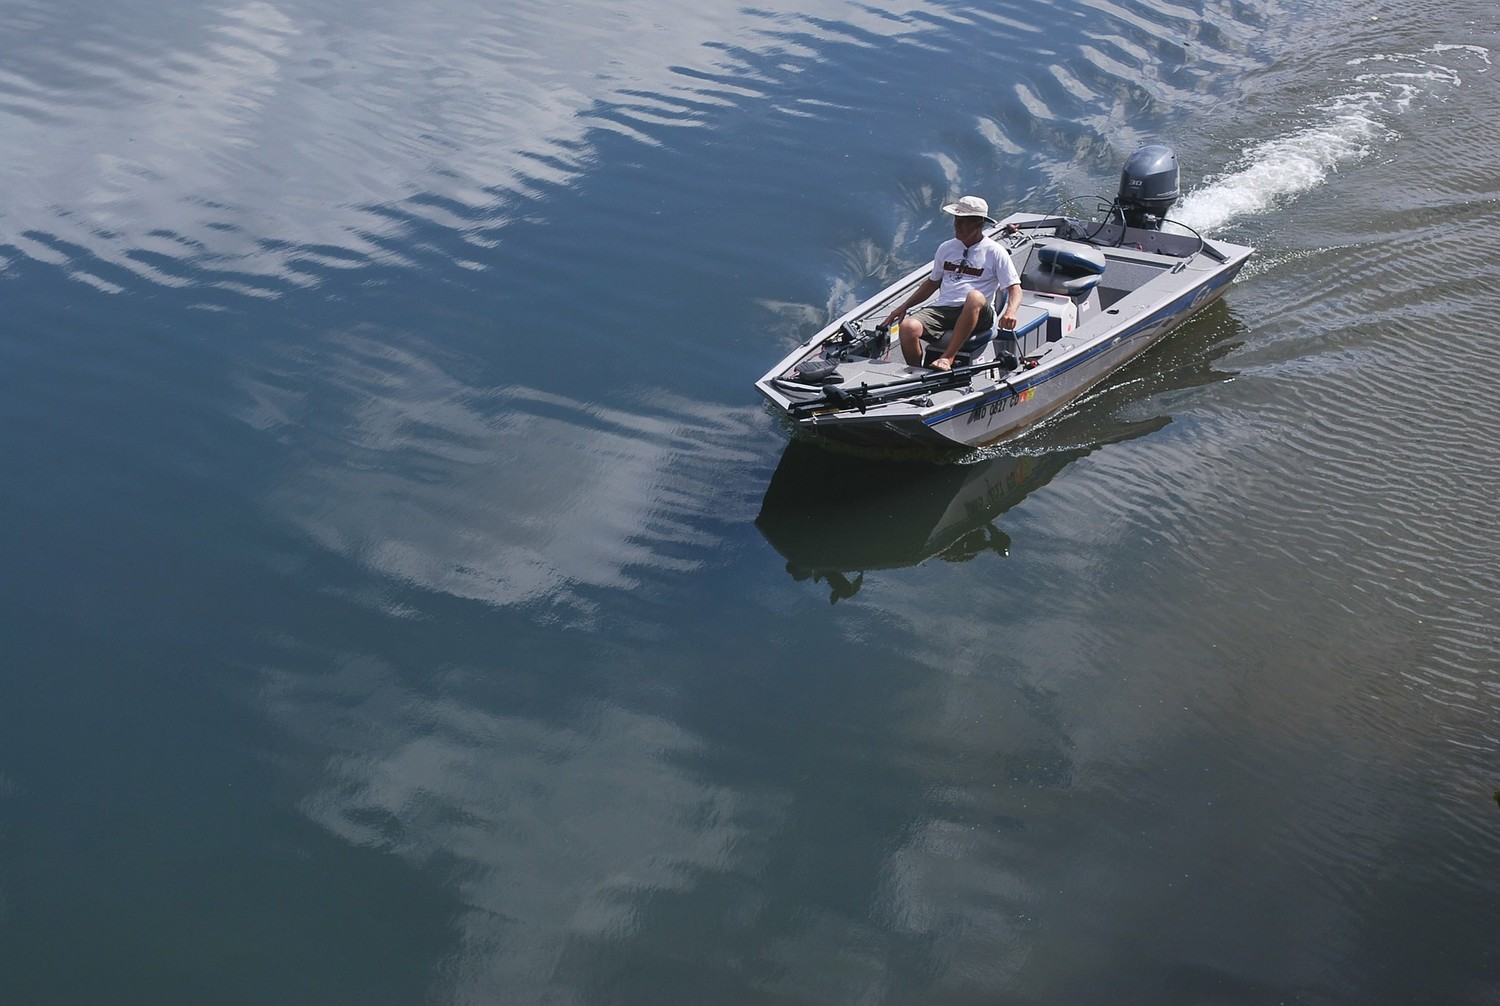 This boater has smooth sailing. Tom Shank wasn't so lucky when his boat got loose on the Susquehanna River several years ago.